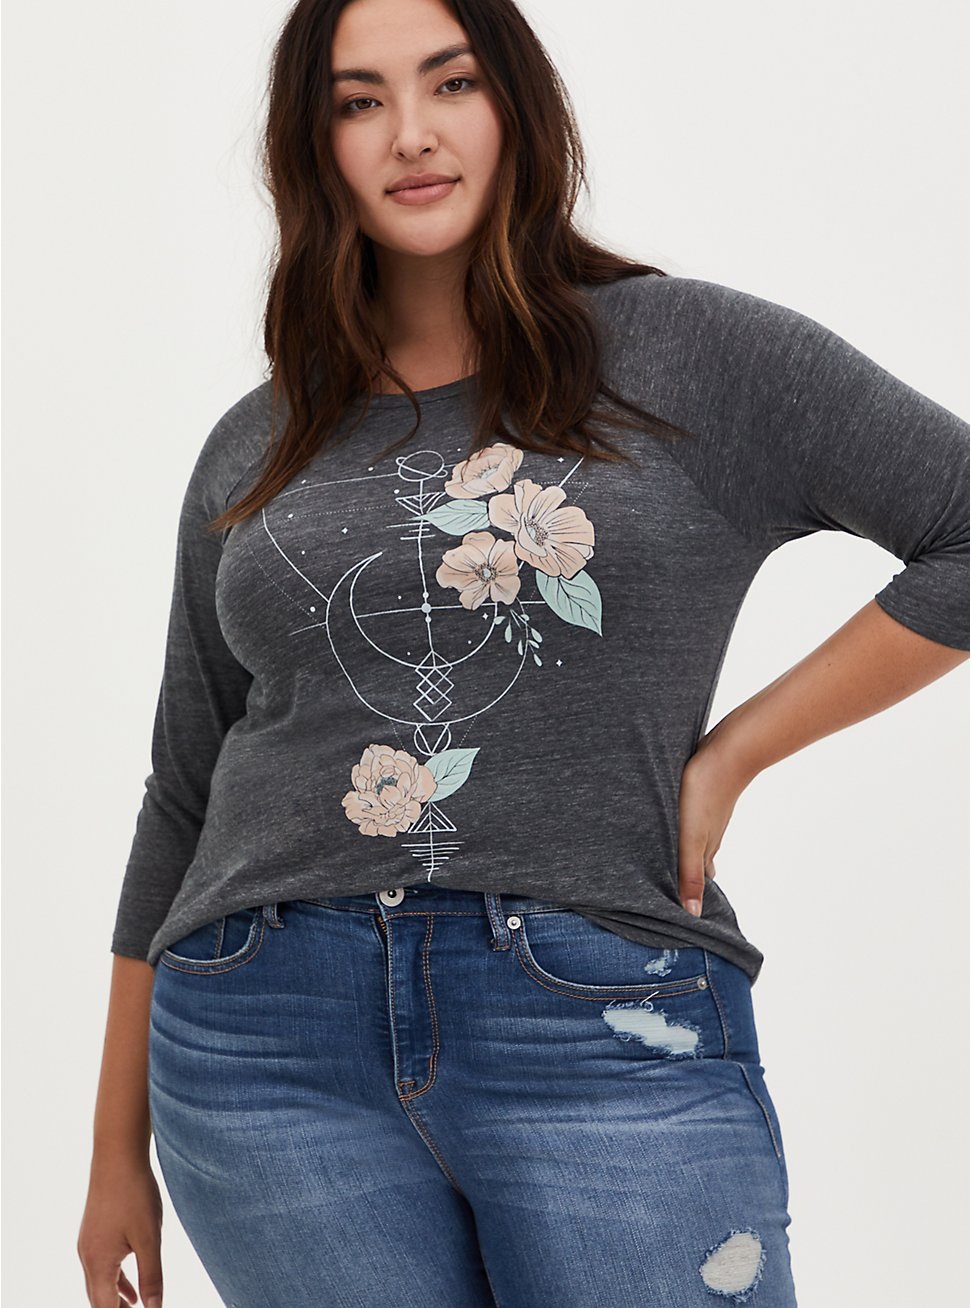 Classic Fit Graphic Tee - Celestial Floral Charcoal Grey , DEEP BLACK, hi-res